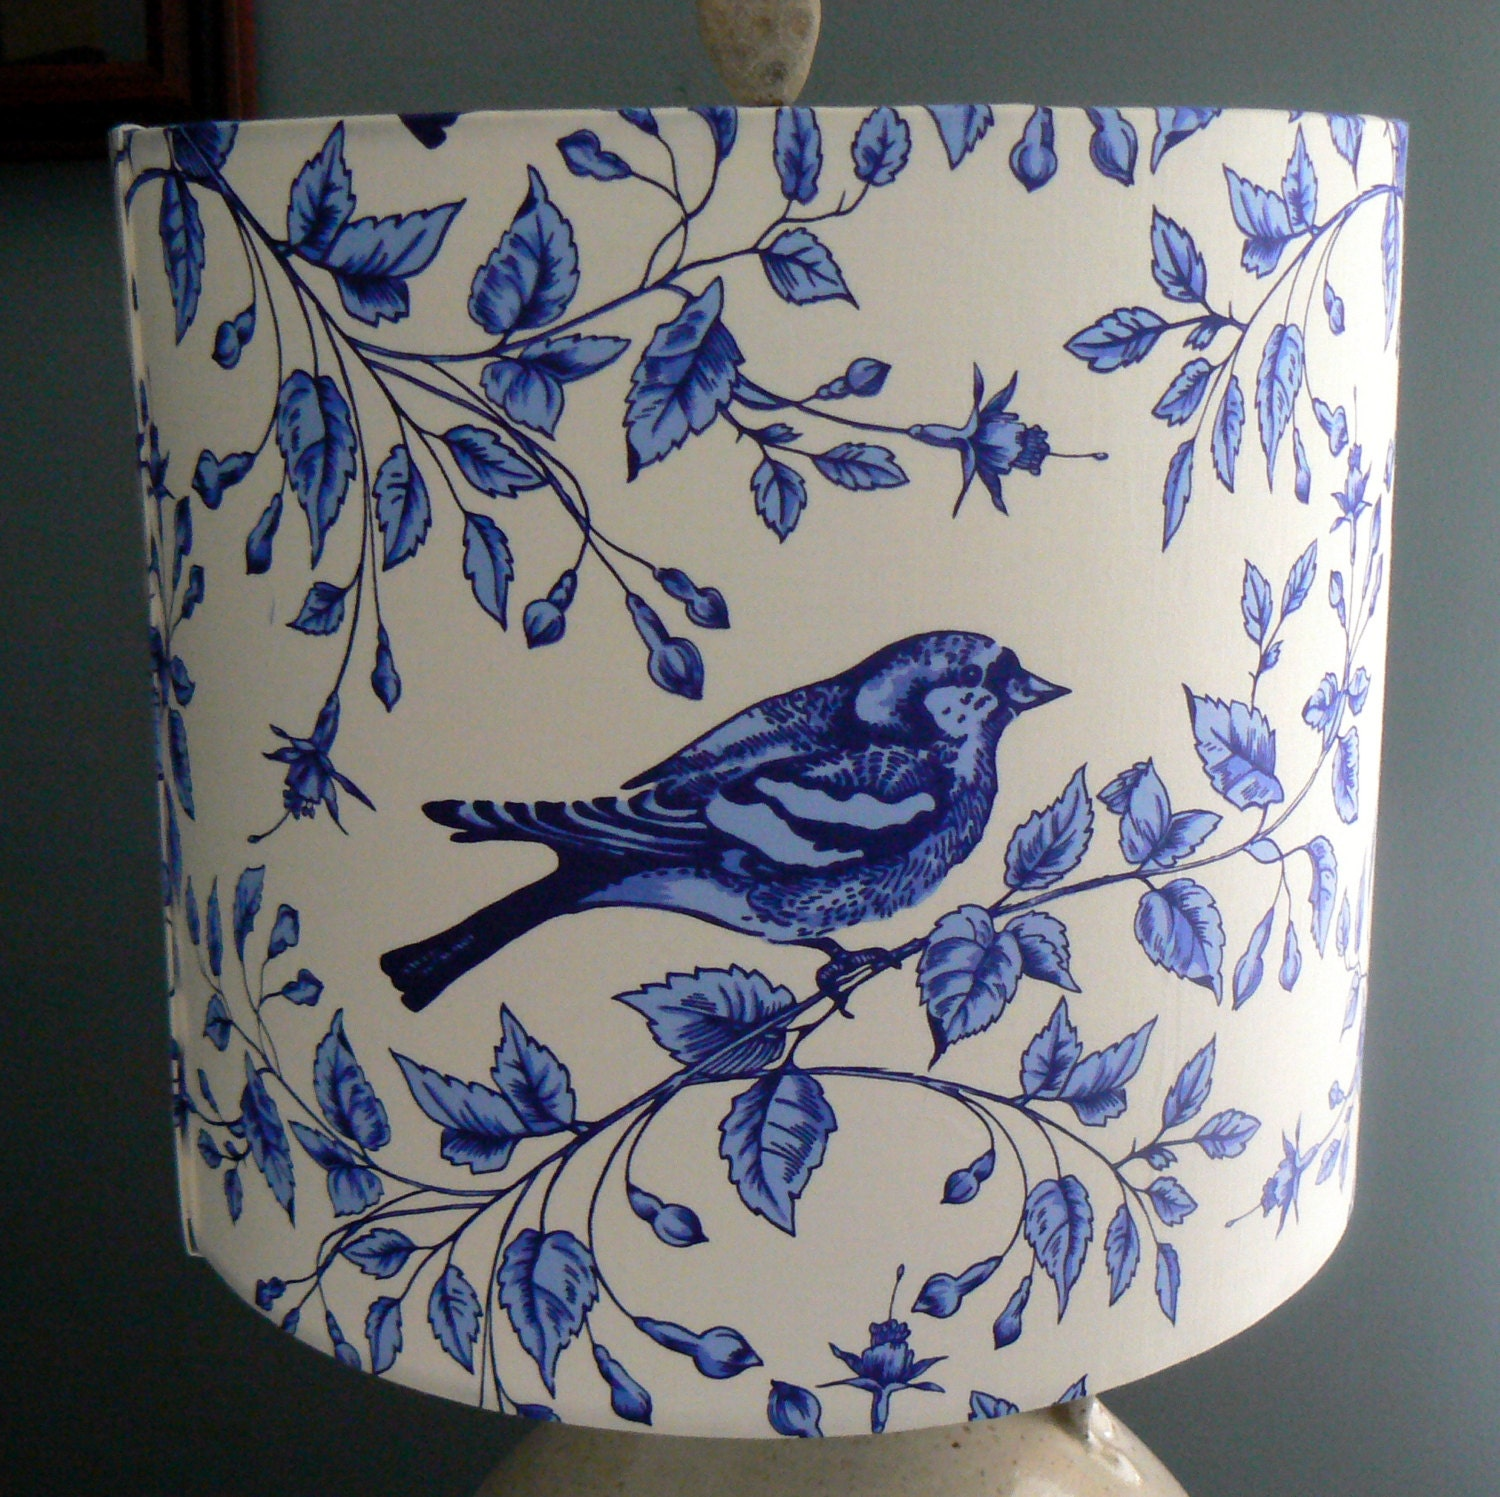 Bird Lamp Shade: Blue And White Bird Lamp Shade Bright Fresh By LiteandShadow